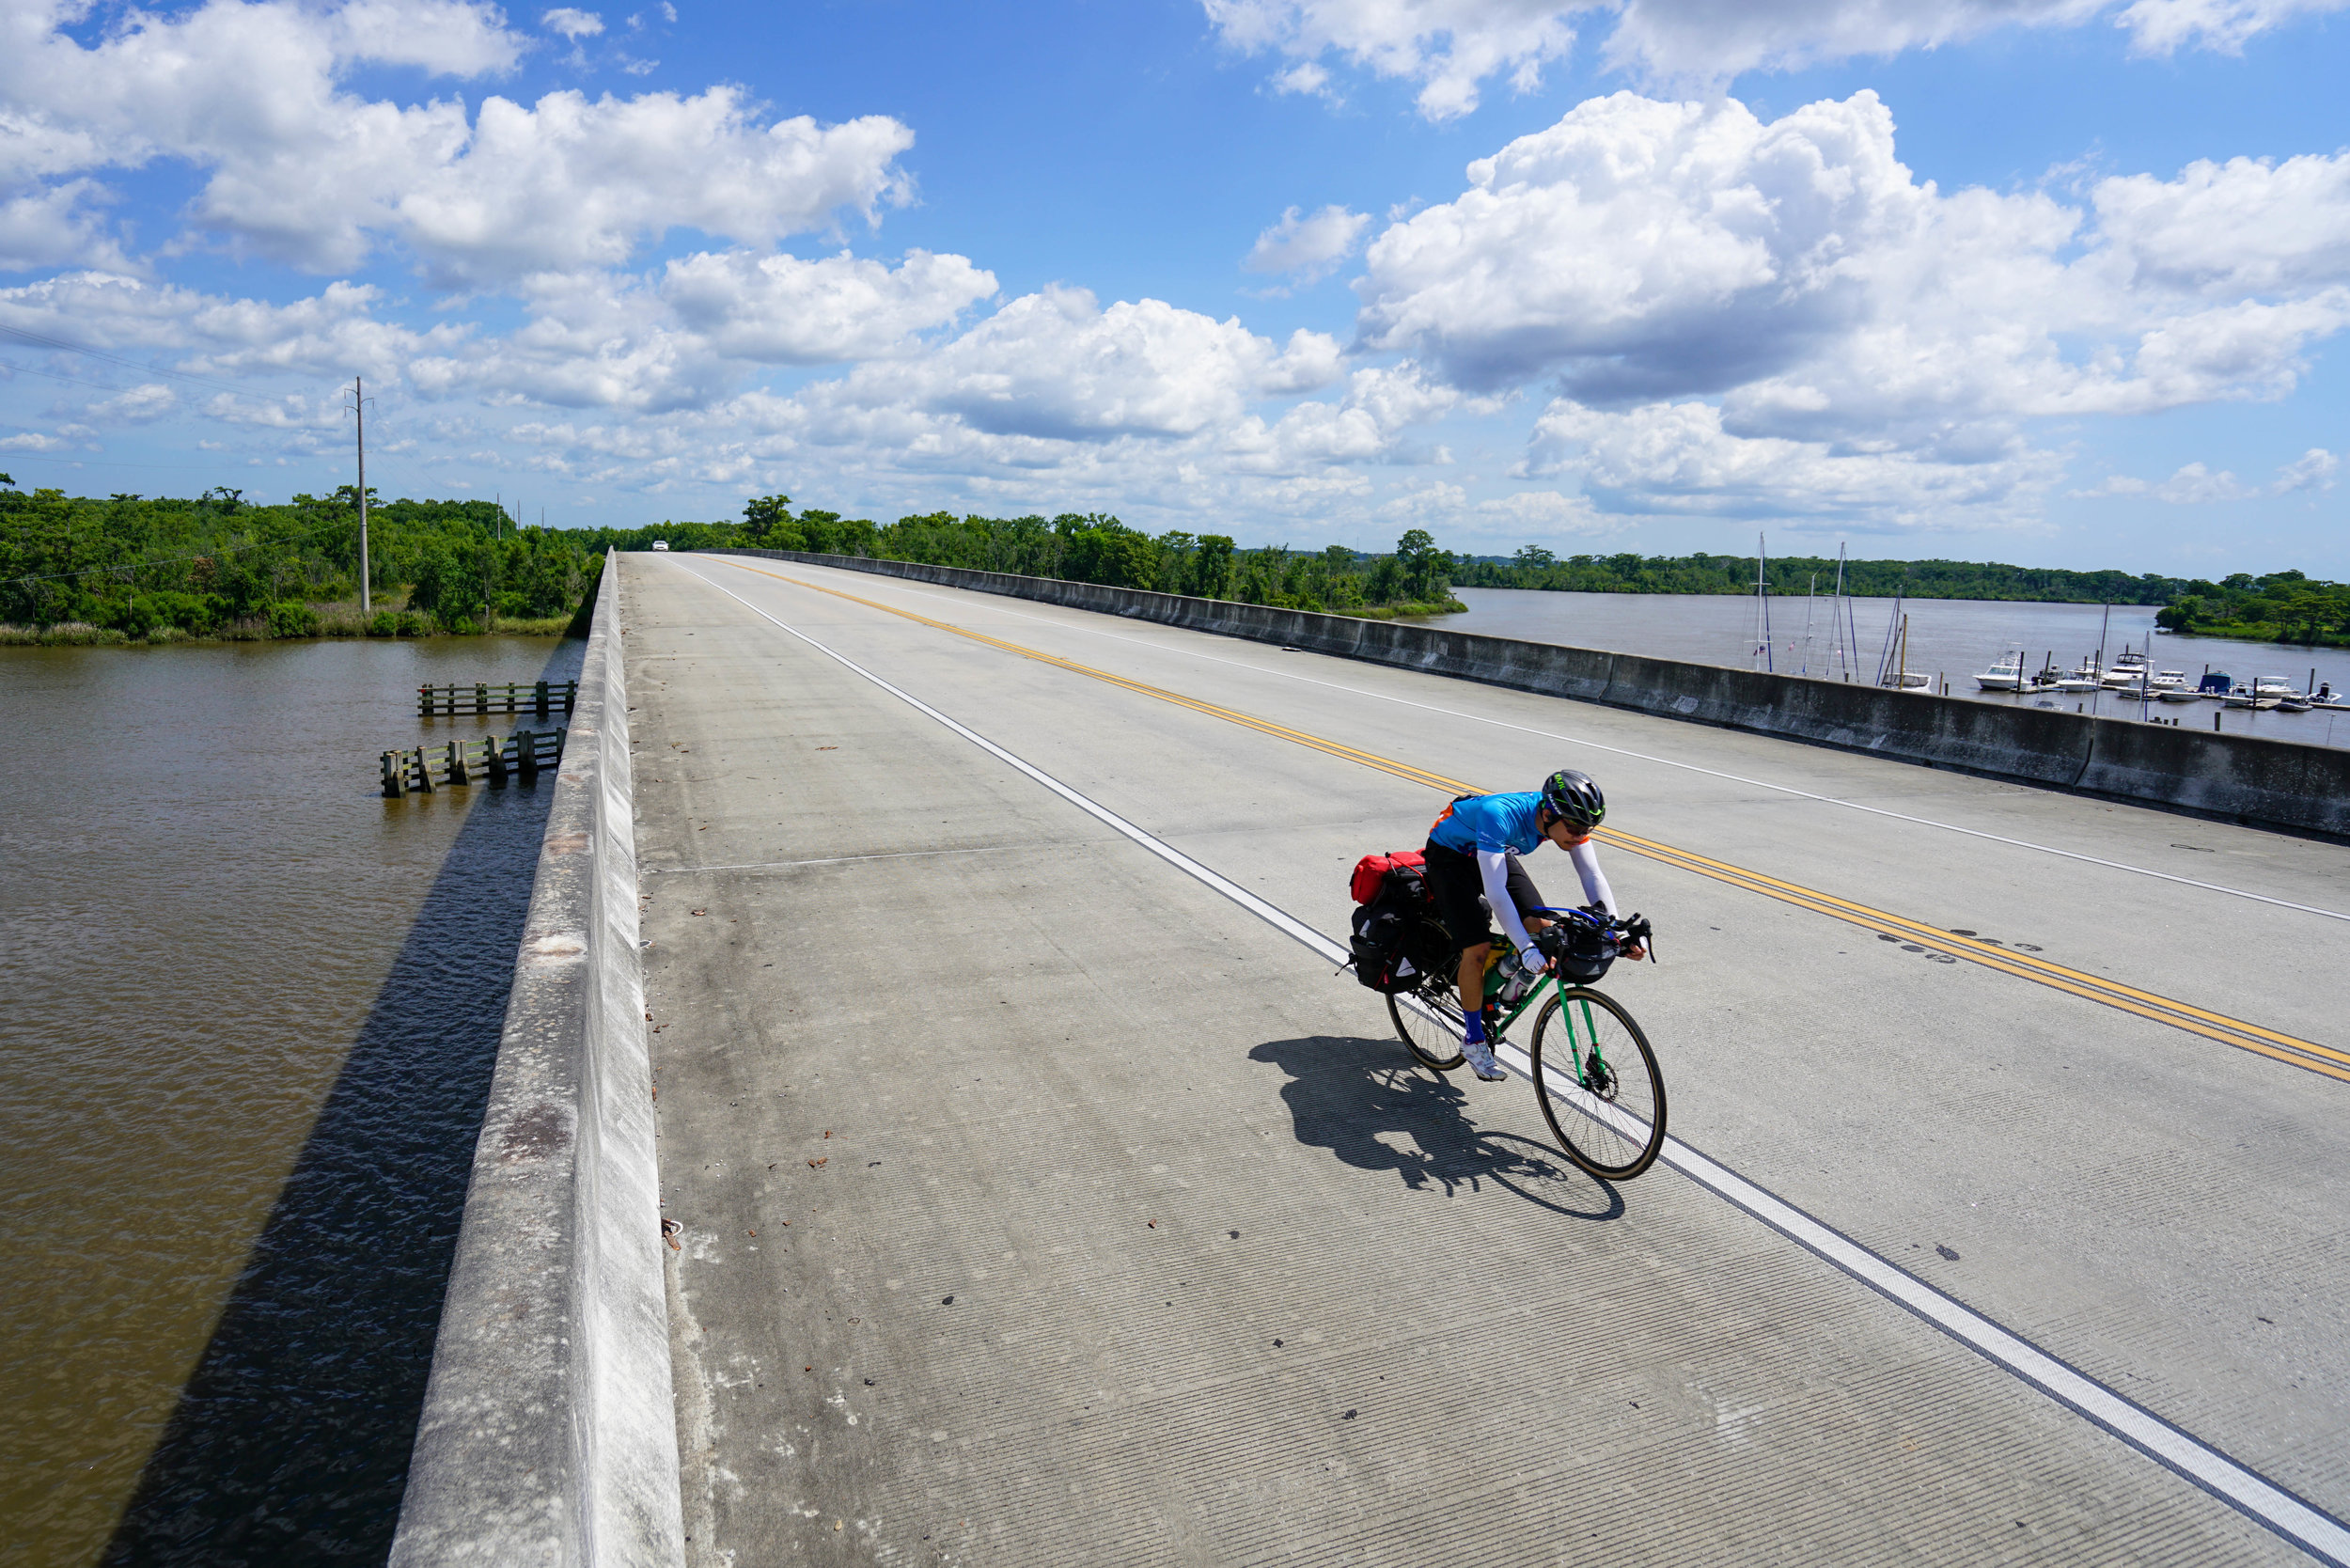 David Dam rides along USBR 1 in Coastal Georgia for the Children's Cancer Research Fund. June 2019.  Photo: Russell Oliver